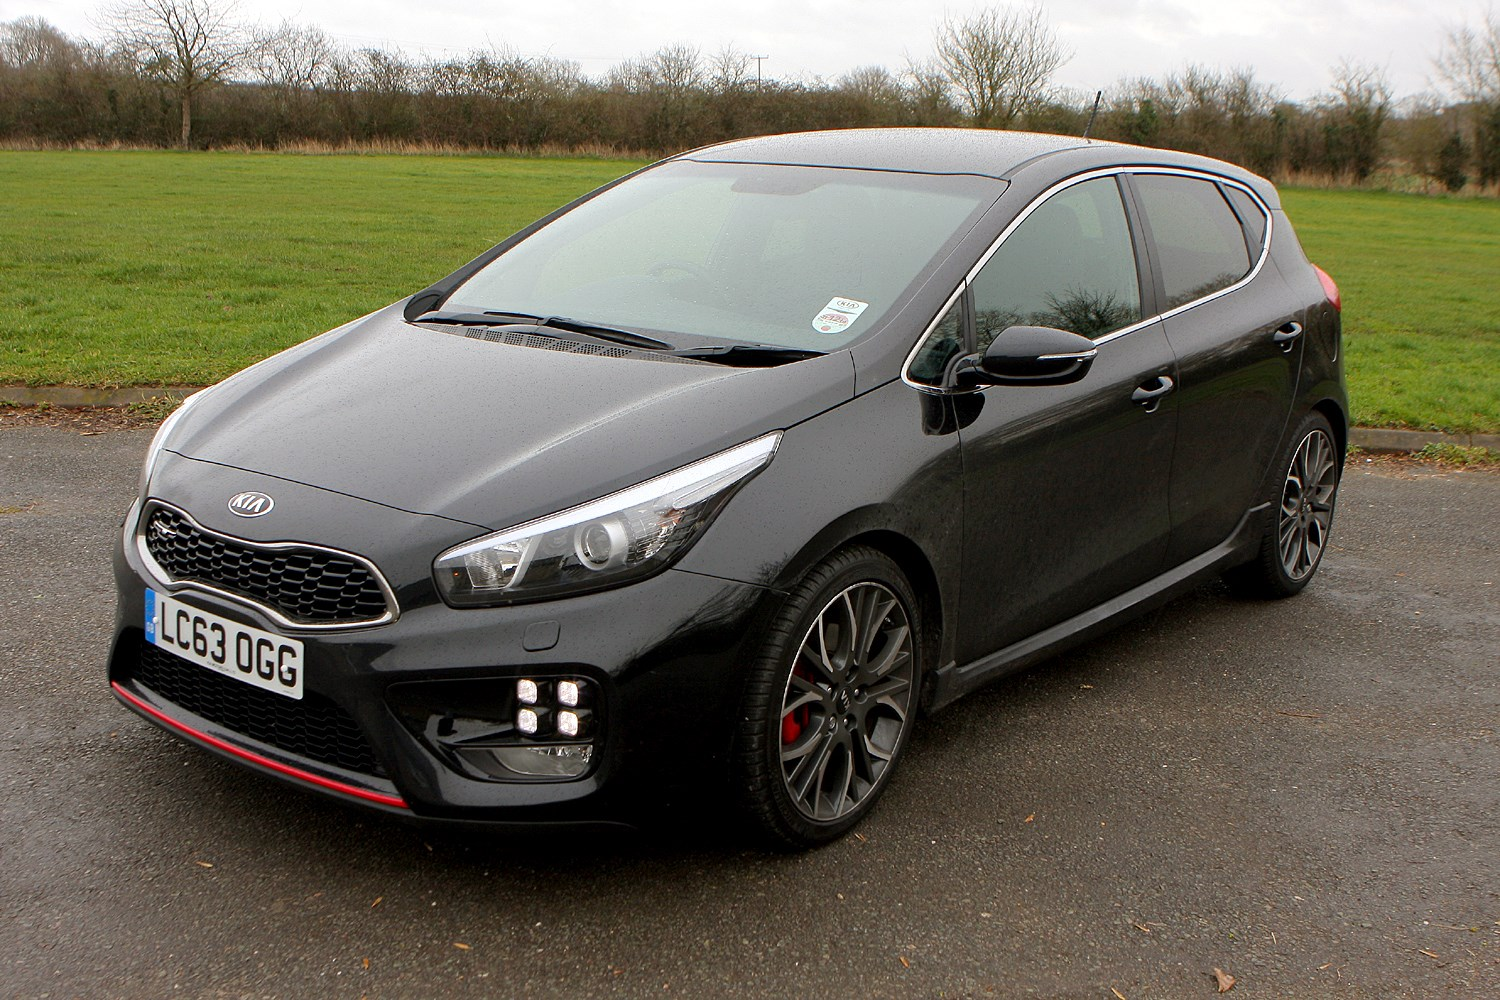 kia ceed gt 2013 running costs parkers. Black Bedroom Furniture Sets. Home Design Ideas